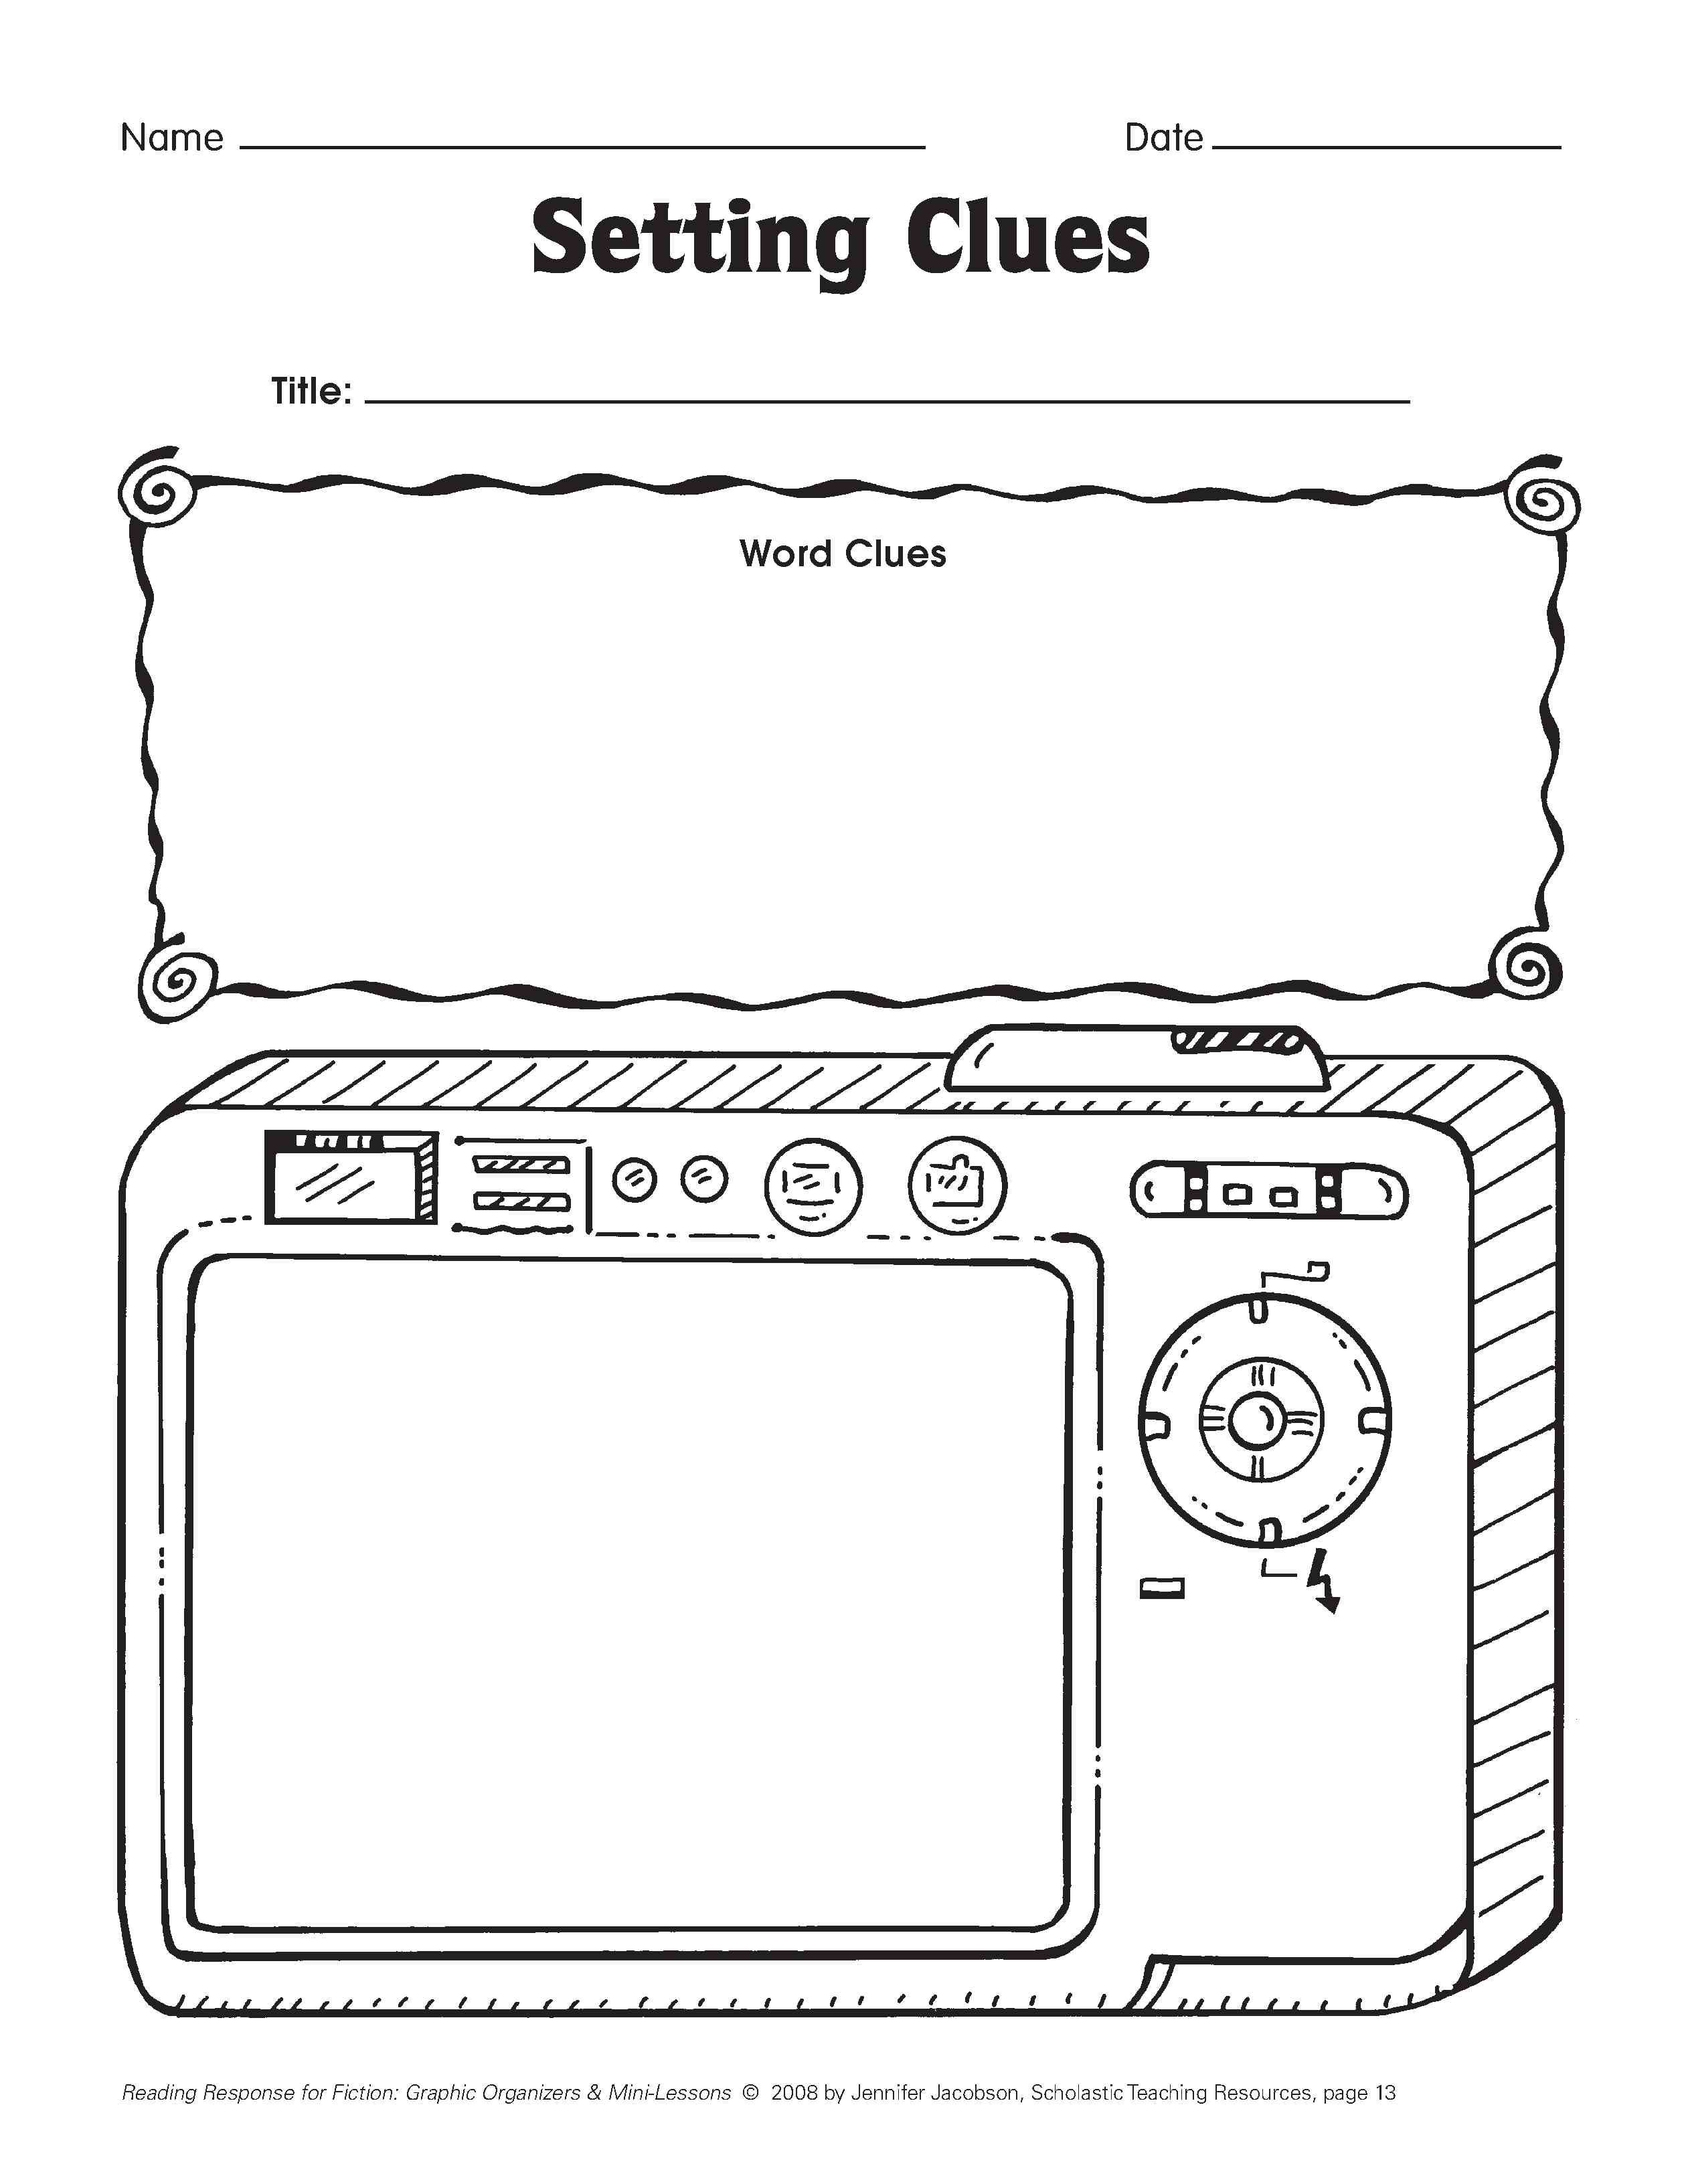 worksheet Character And Setting Worksheets five minute reading responses scholastic com free printable on setting using words from the